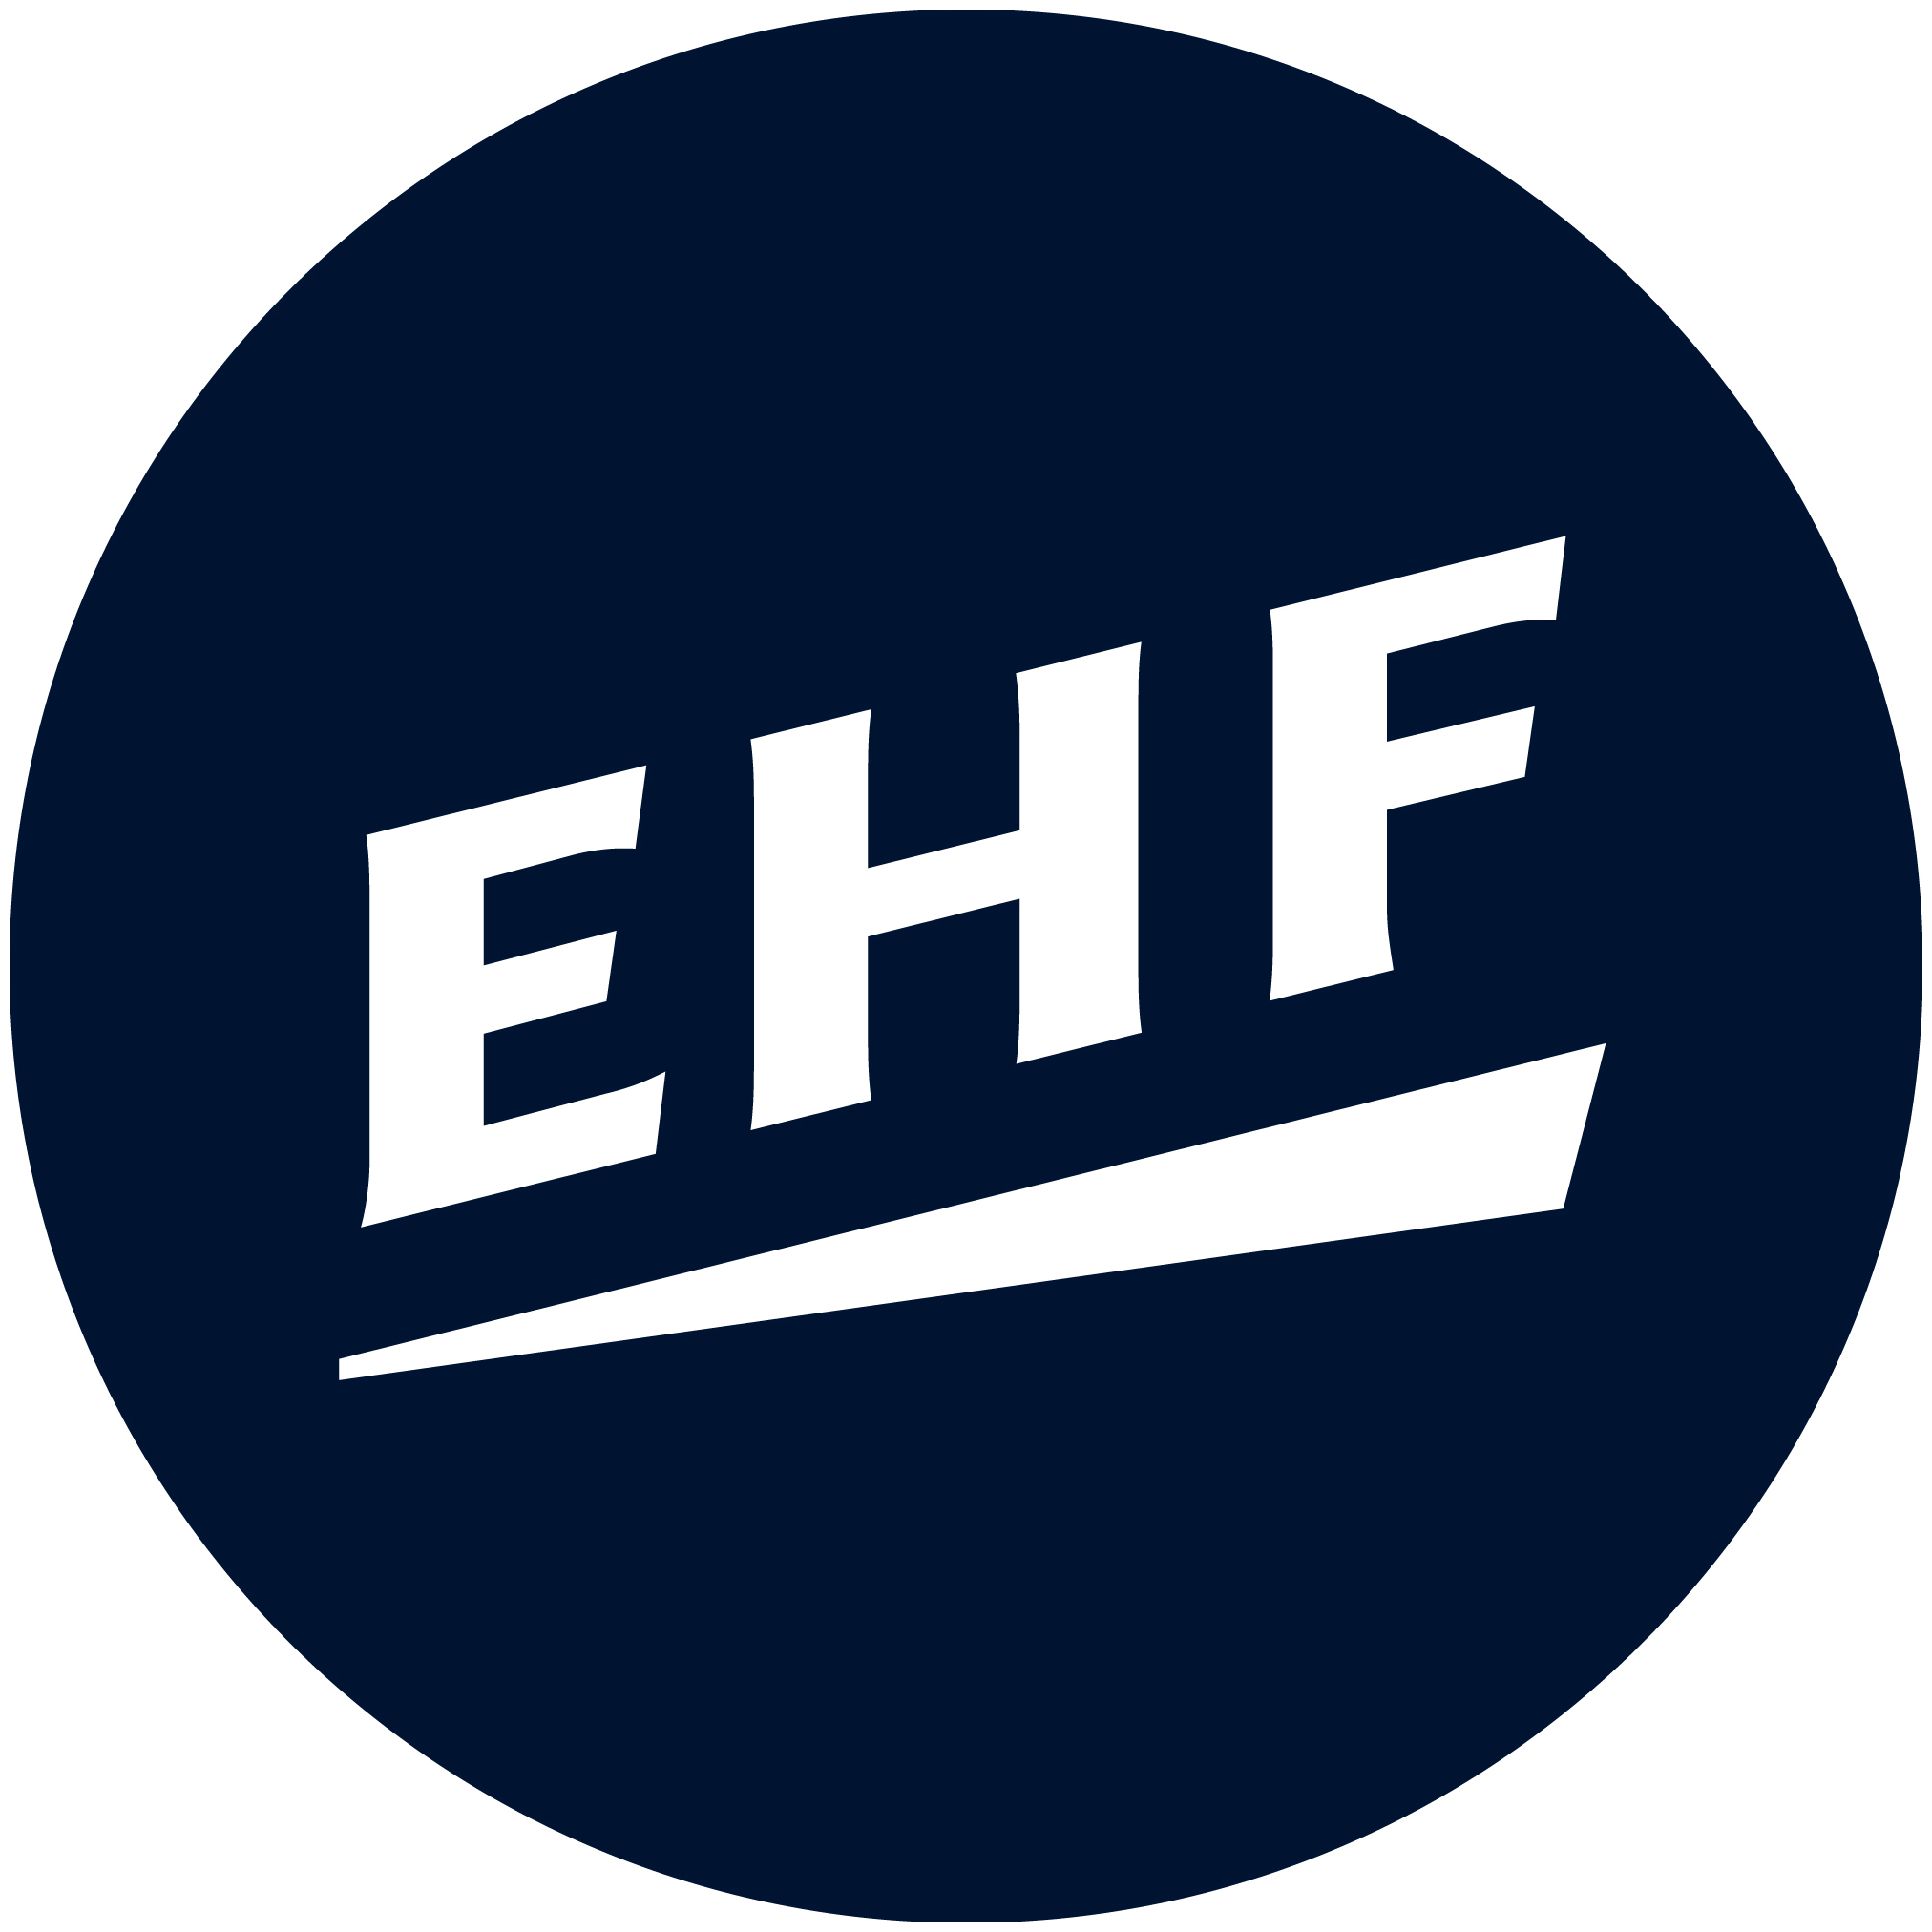 2021 European Handball Men's 18 EHF EURO